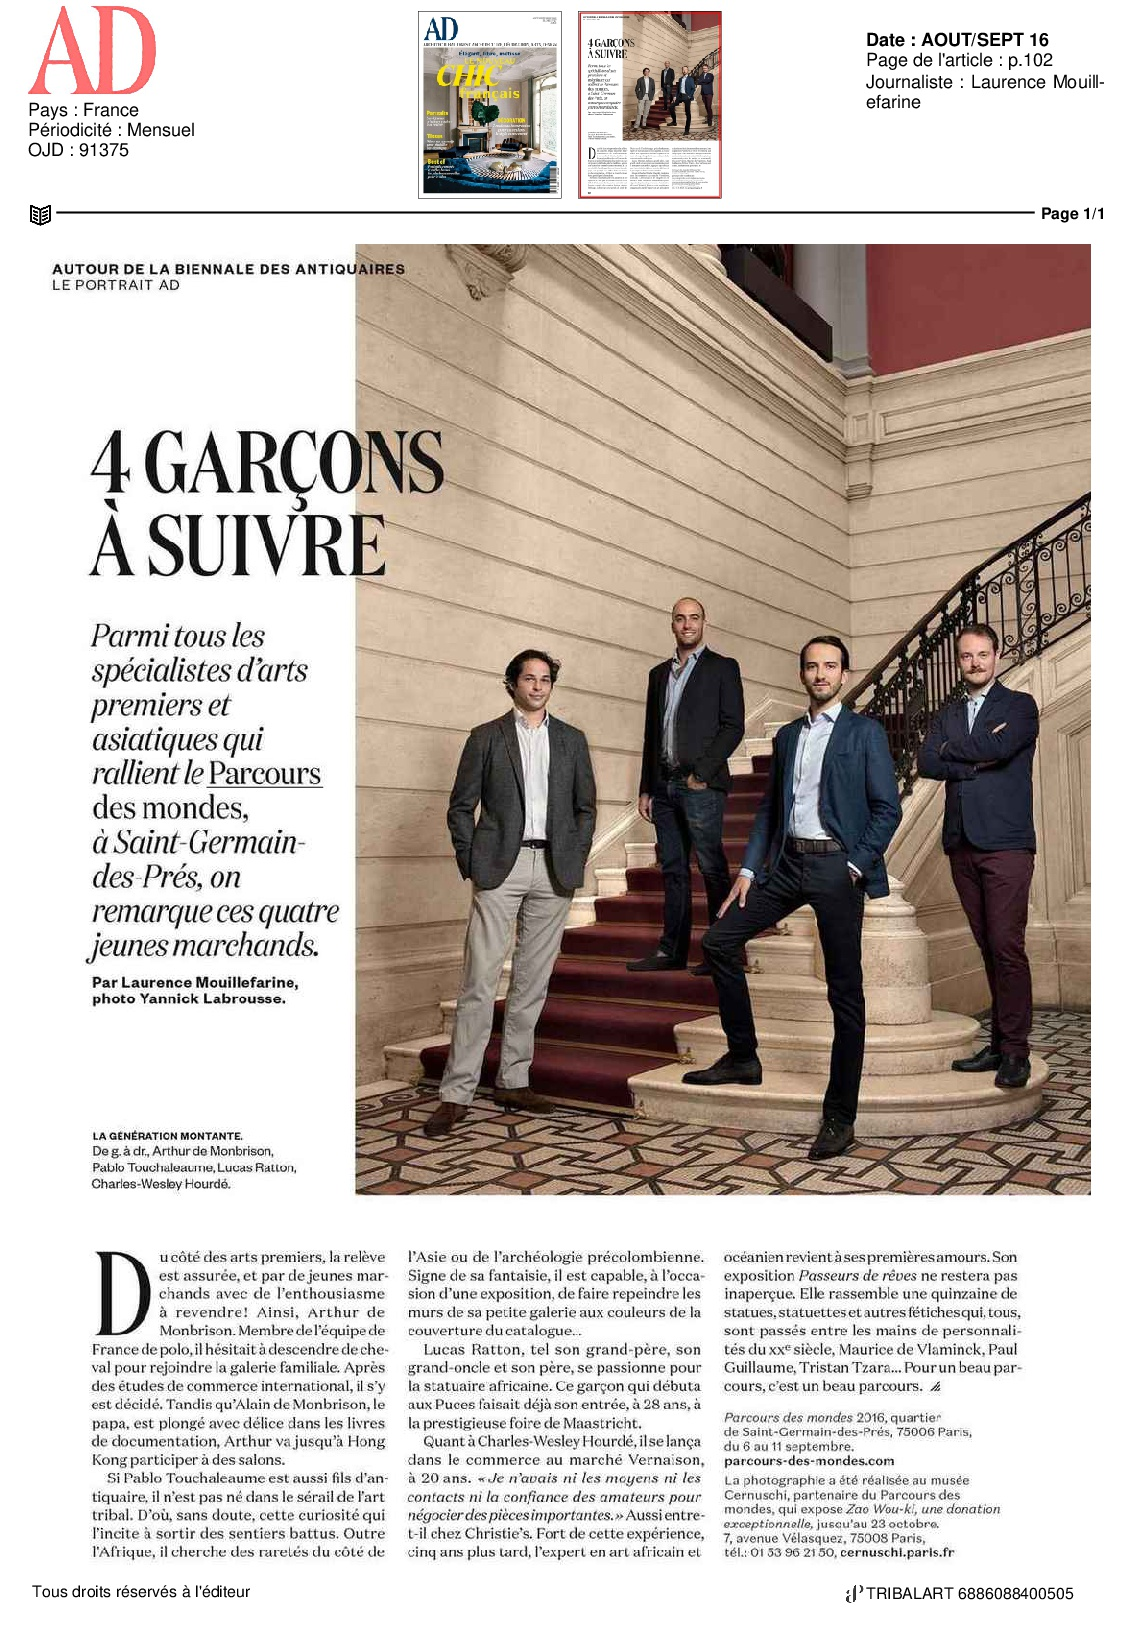 AD Aout/Sept 2016